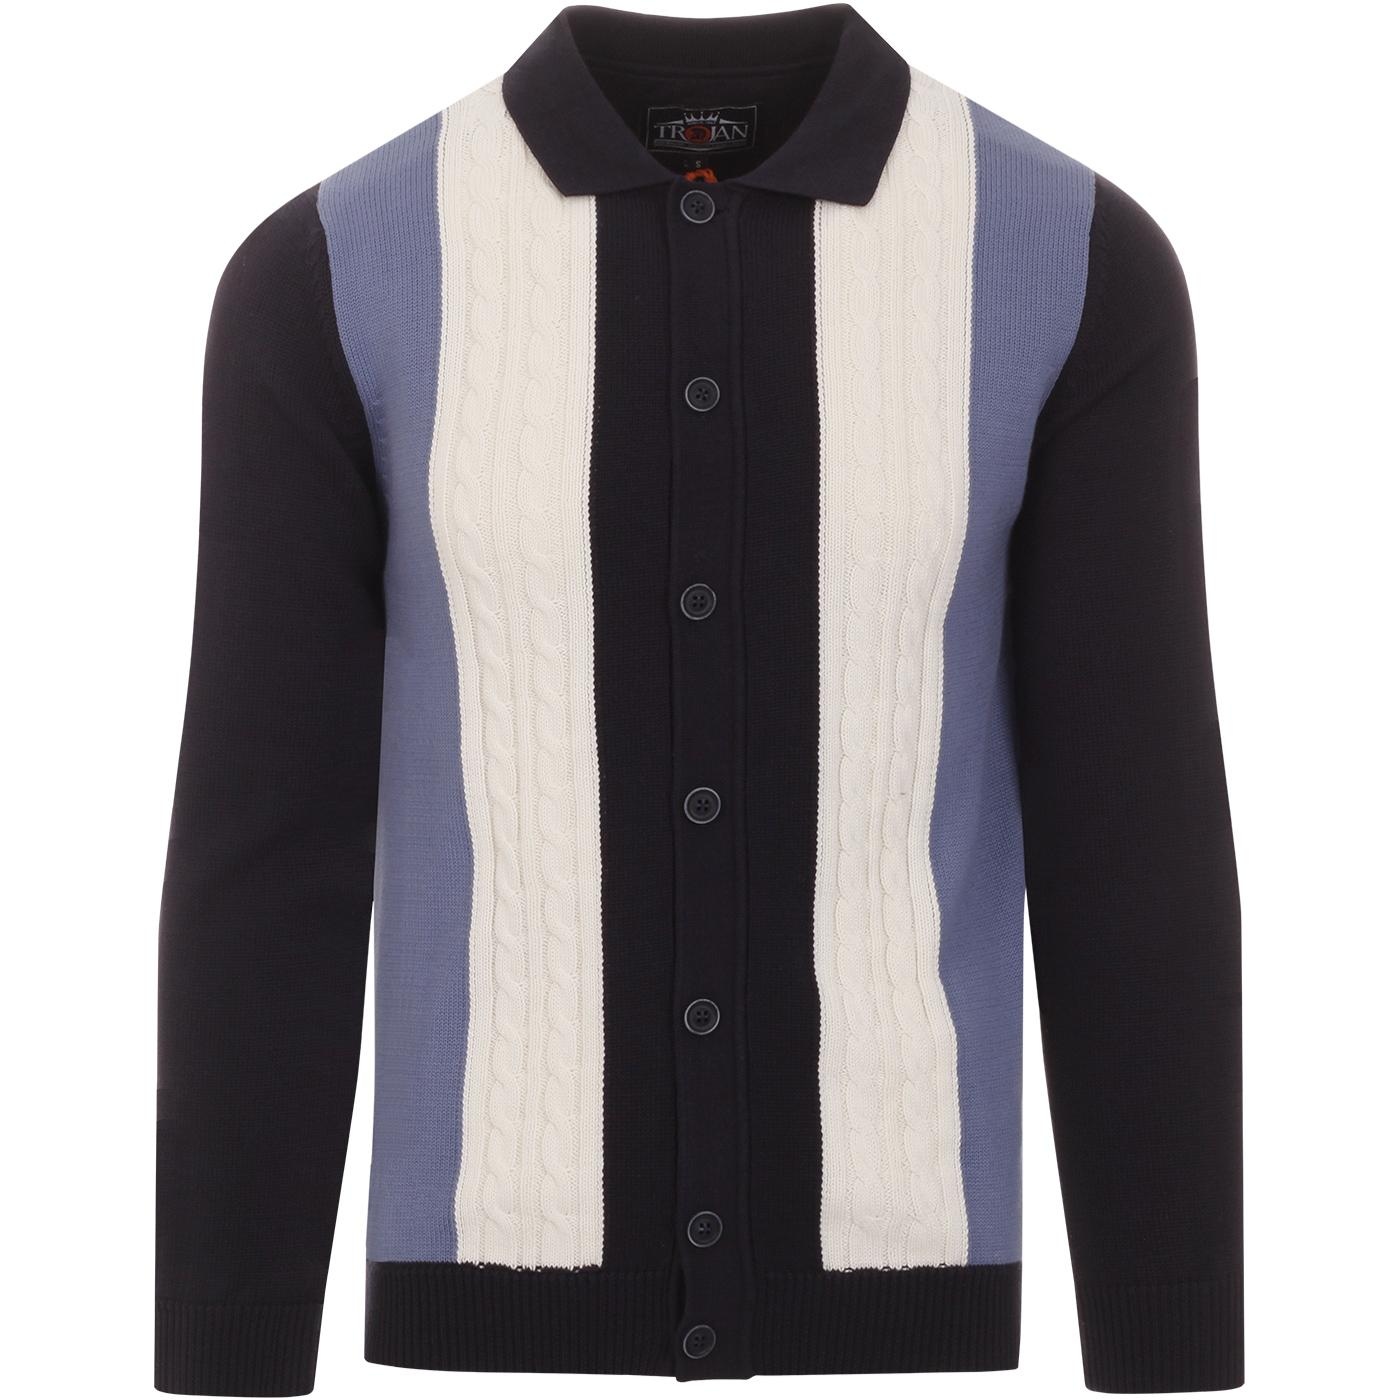 TROJAN RECORDS 60s Mod Cable Knit Polo Cardigan N